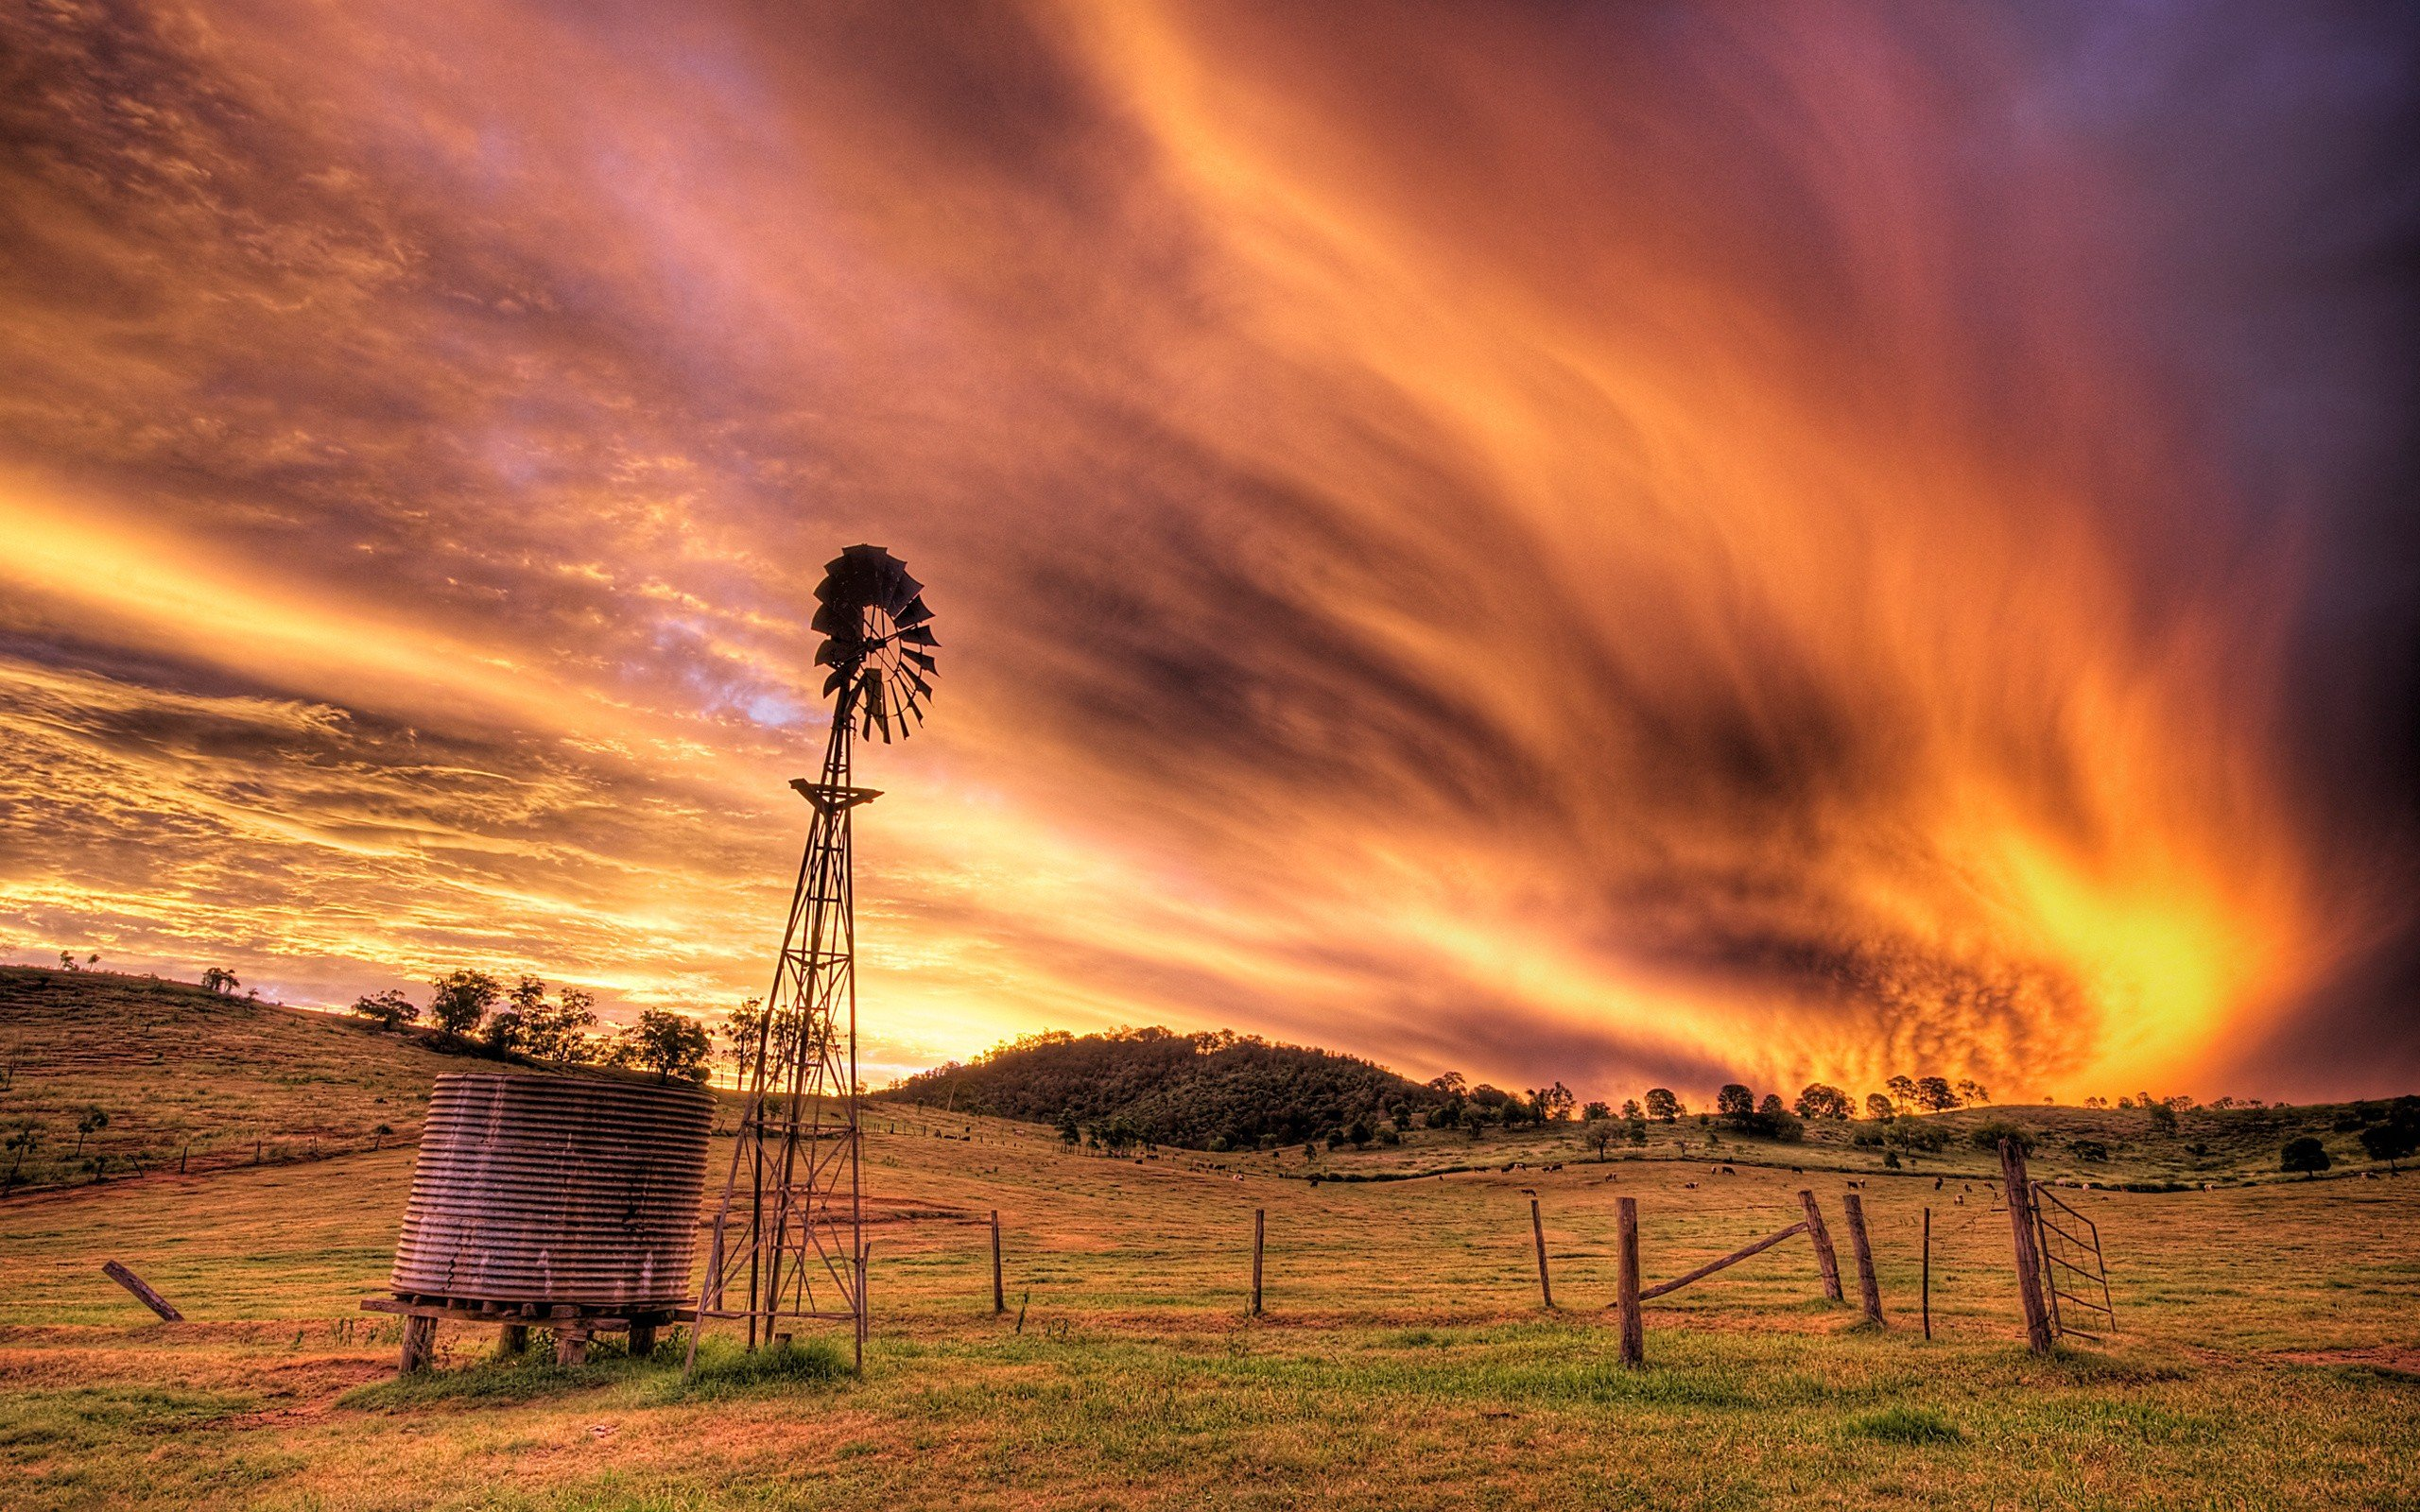 landscapes country hd wallpaper